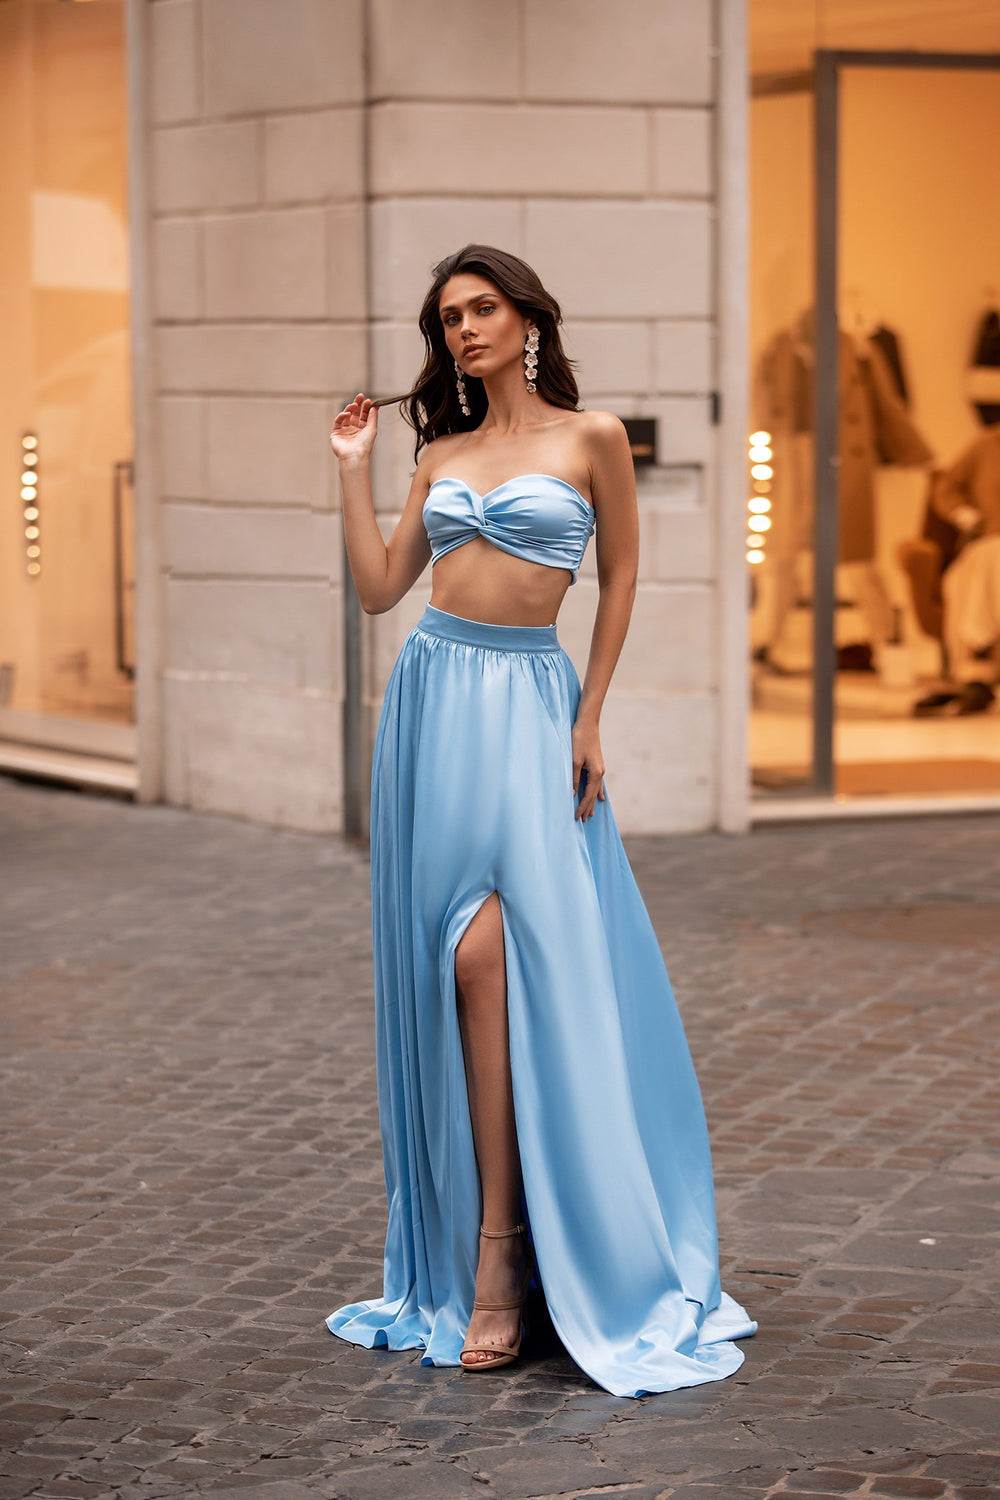 Tina - Sky Blue Satin Two Piece Gown with Slit & Knot Bust Detail